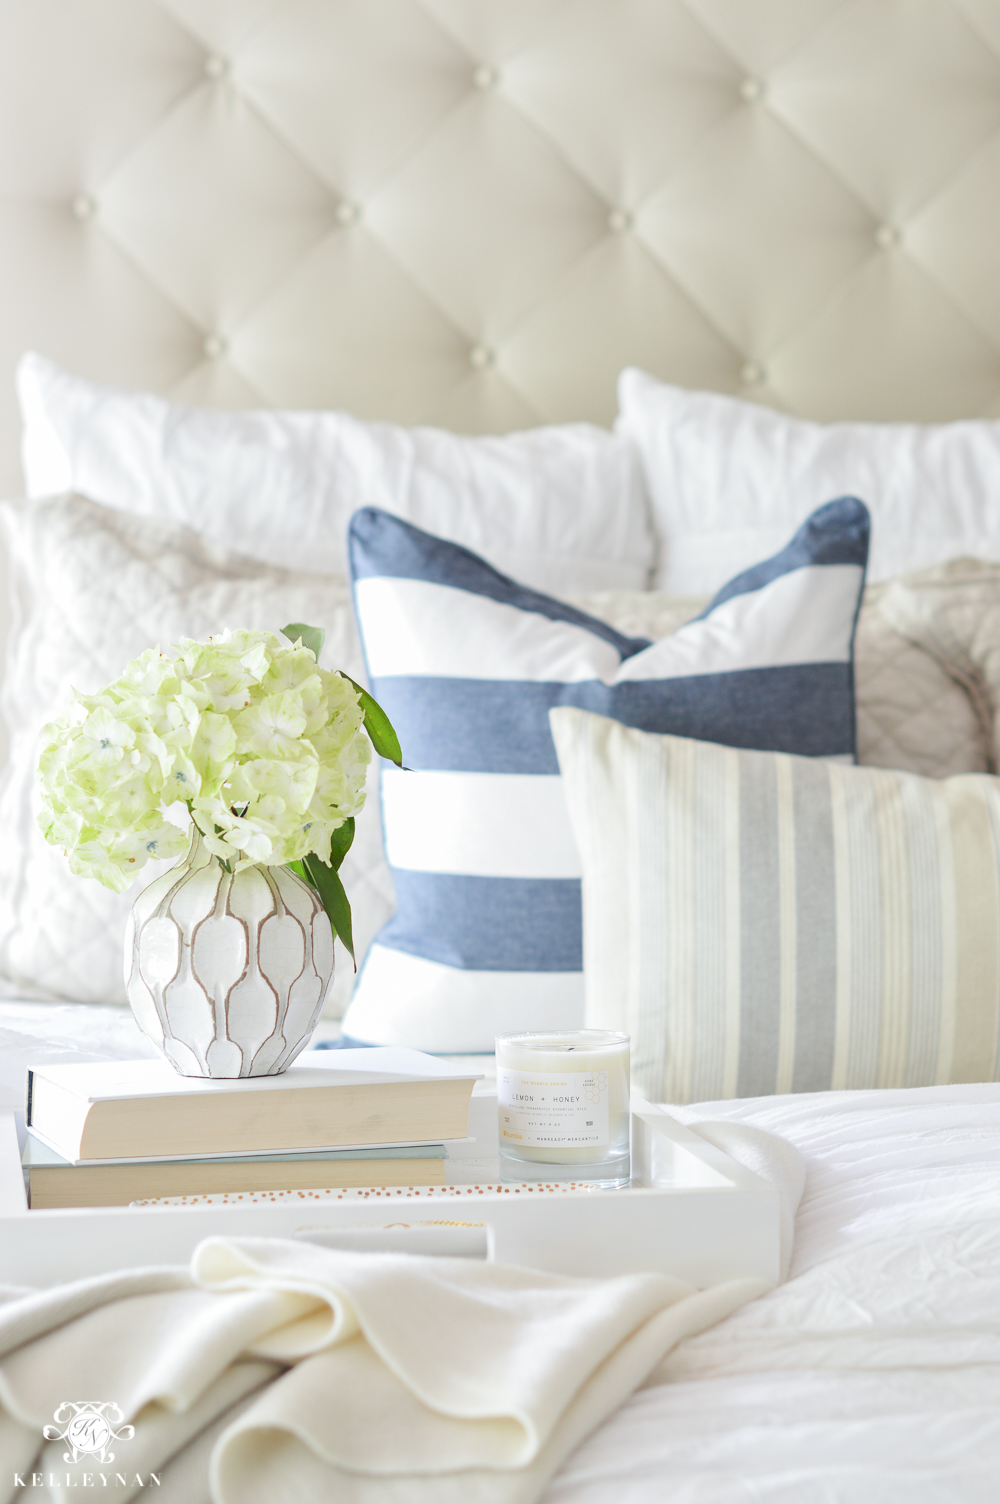 Shades of Summer Home Tour with Neutrals and Naturals-nautical blue and white striped pillows on cream tufted bed